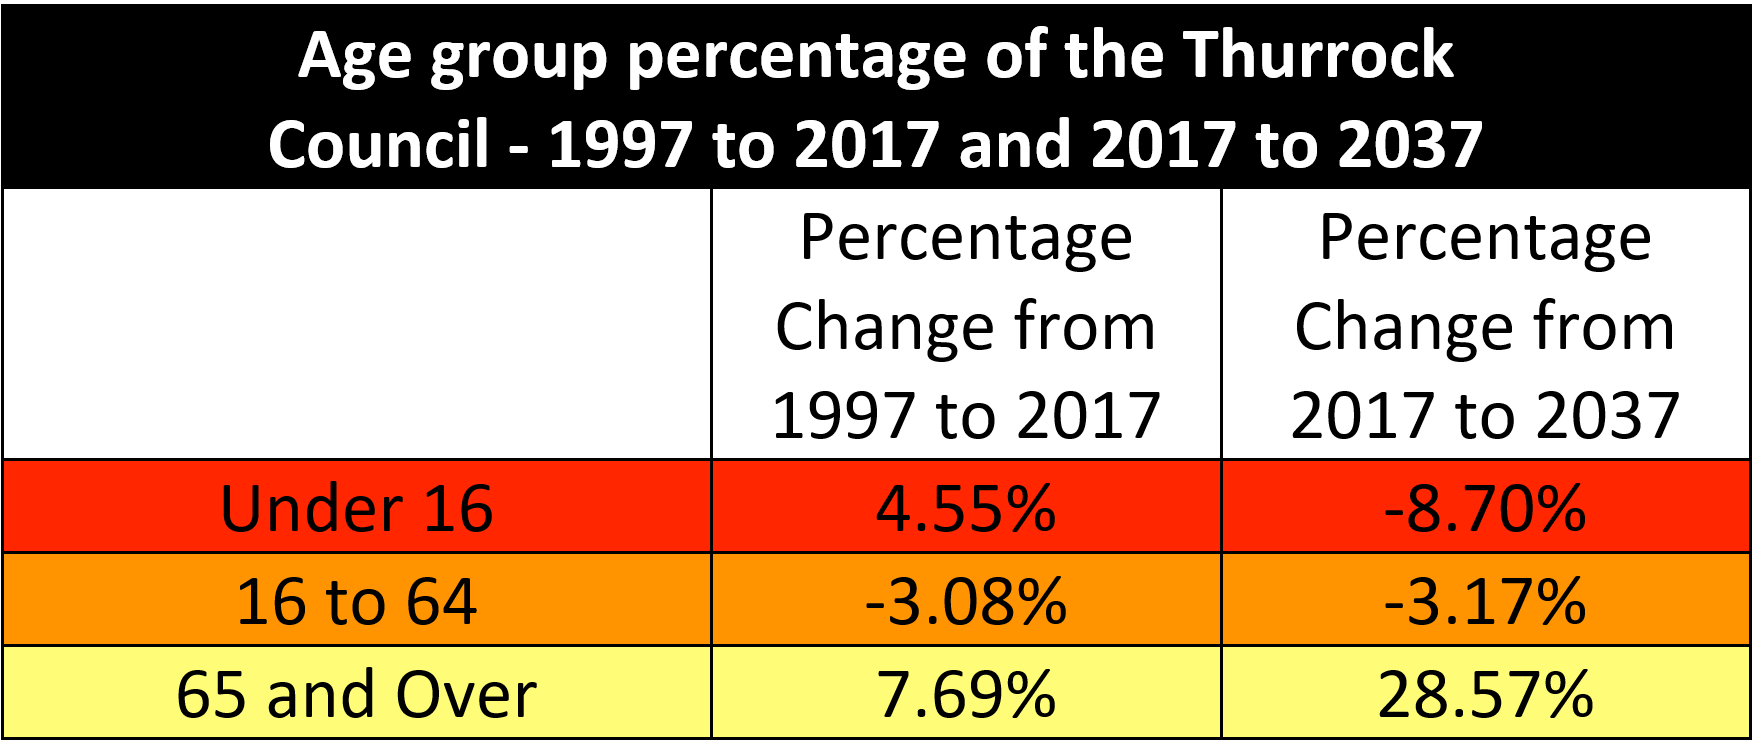 Age Group Percentage Of Thurrock Council 2